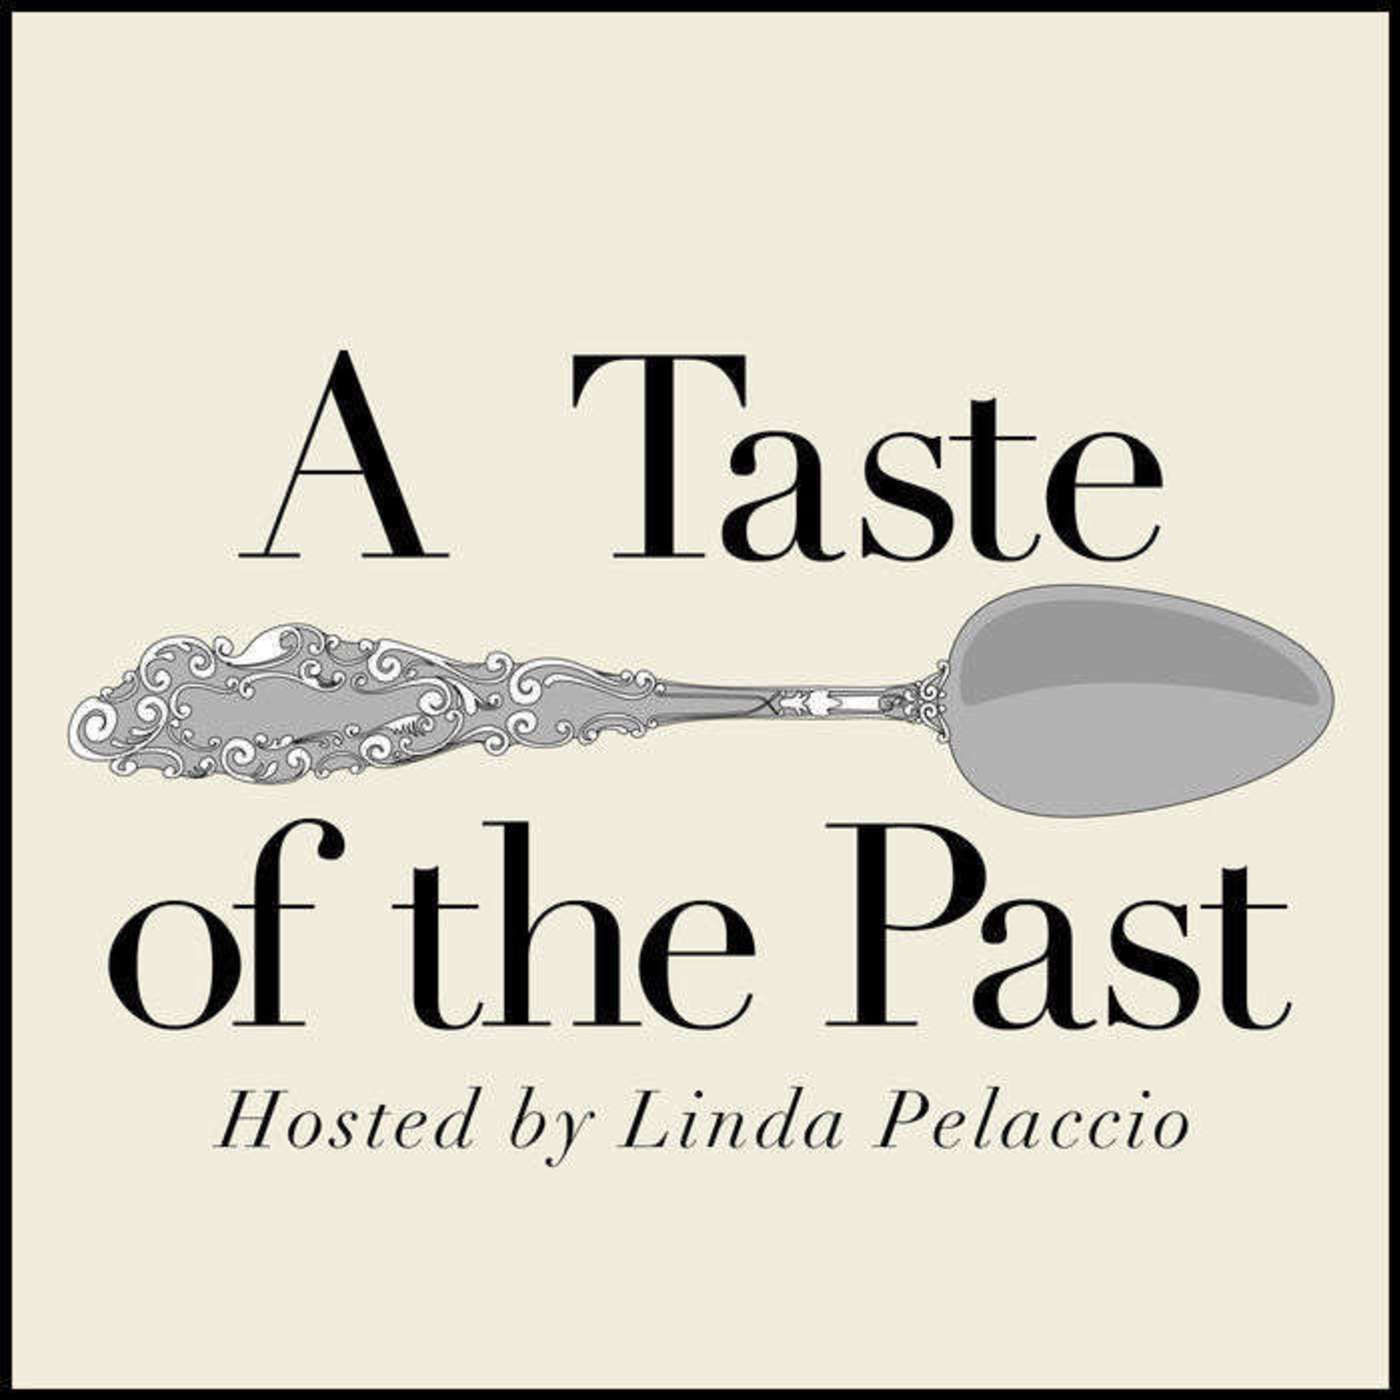 Episode 203: The Middle Eastern Roots of Spices and the Early Globalization of Food